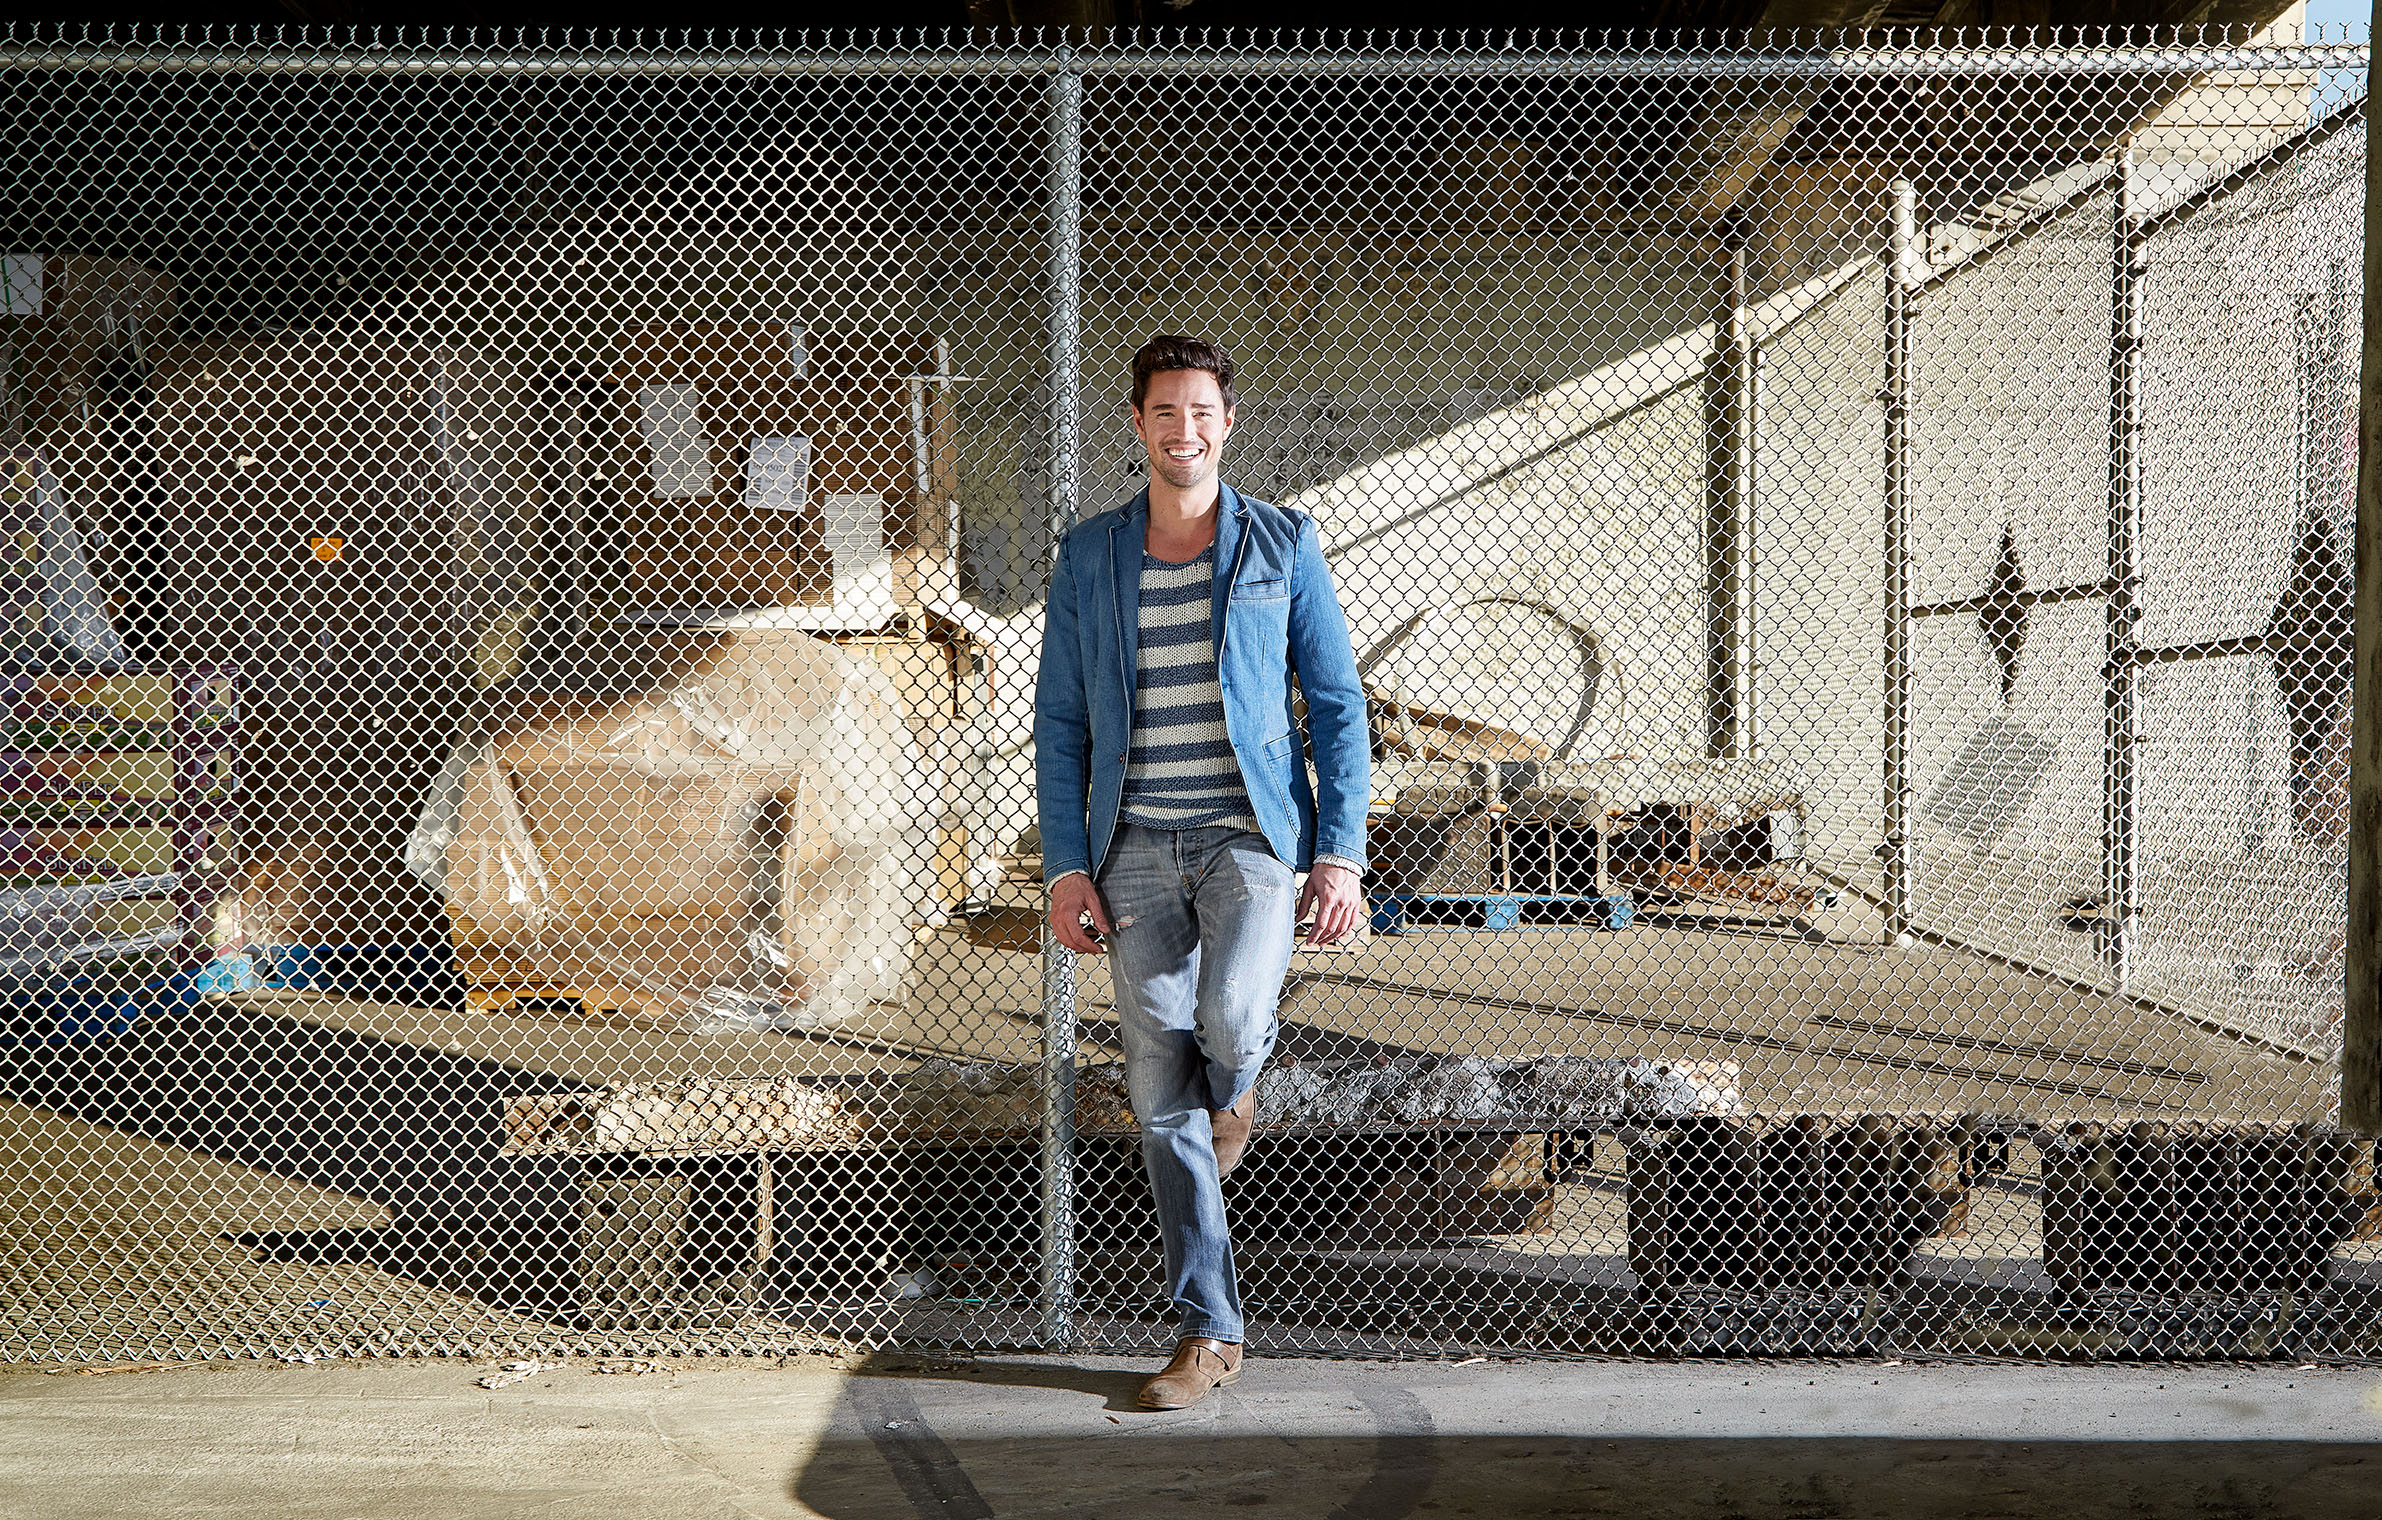 Great looking man smiling big in denim, jeans and jeans jacket at fence in Los Angeles in glowing sunlight